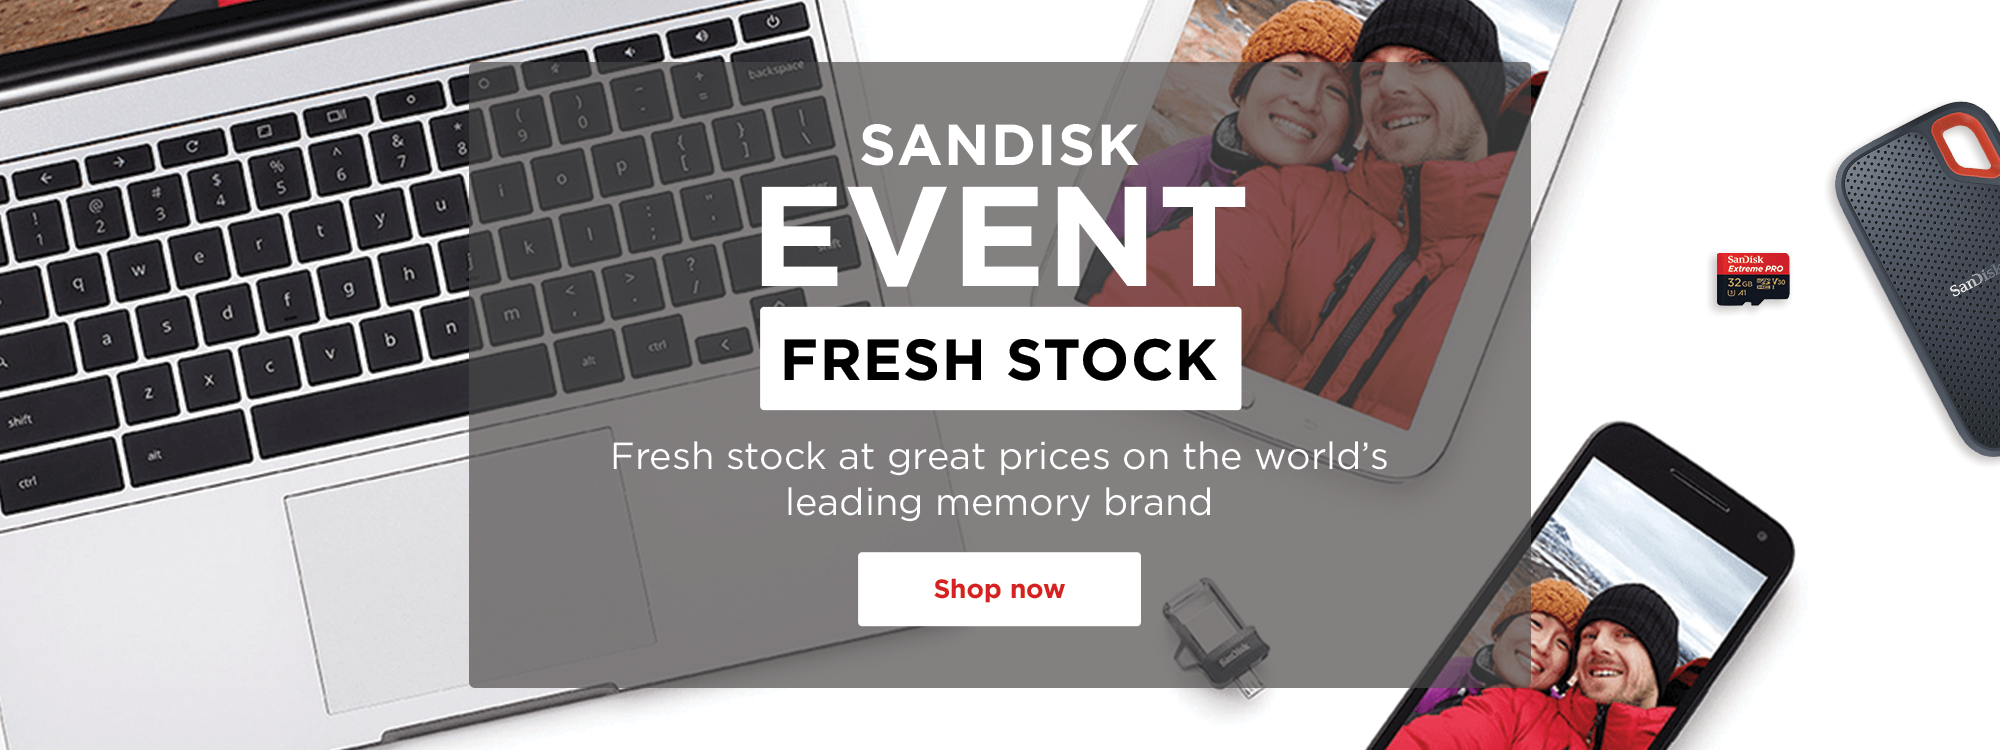 SanDisk Event! Fresh stock at great prices on the world's leading memory brand